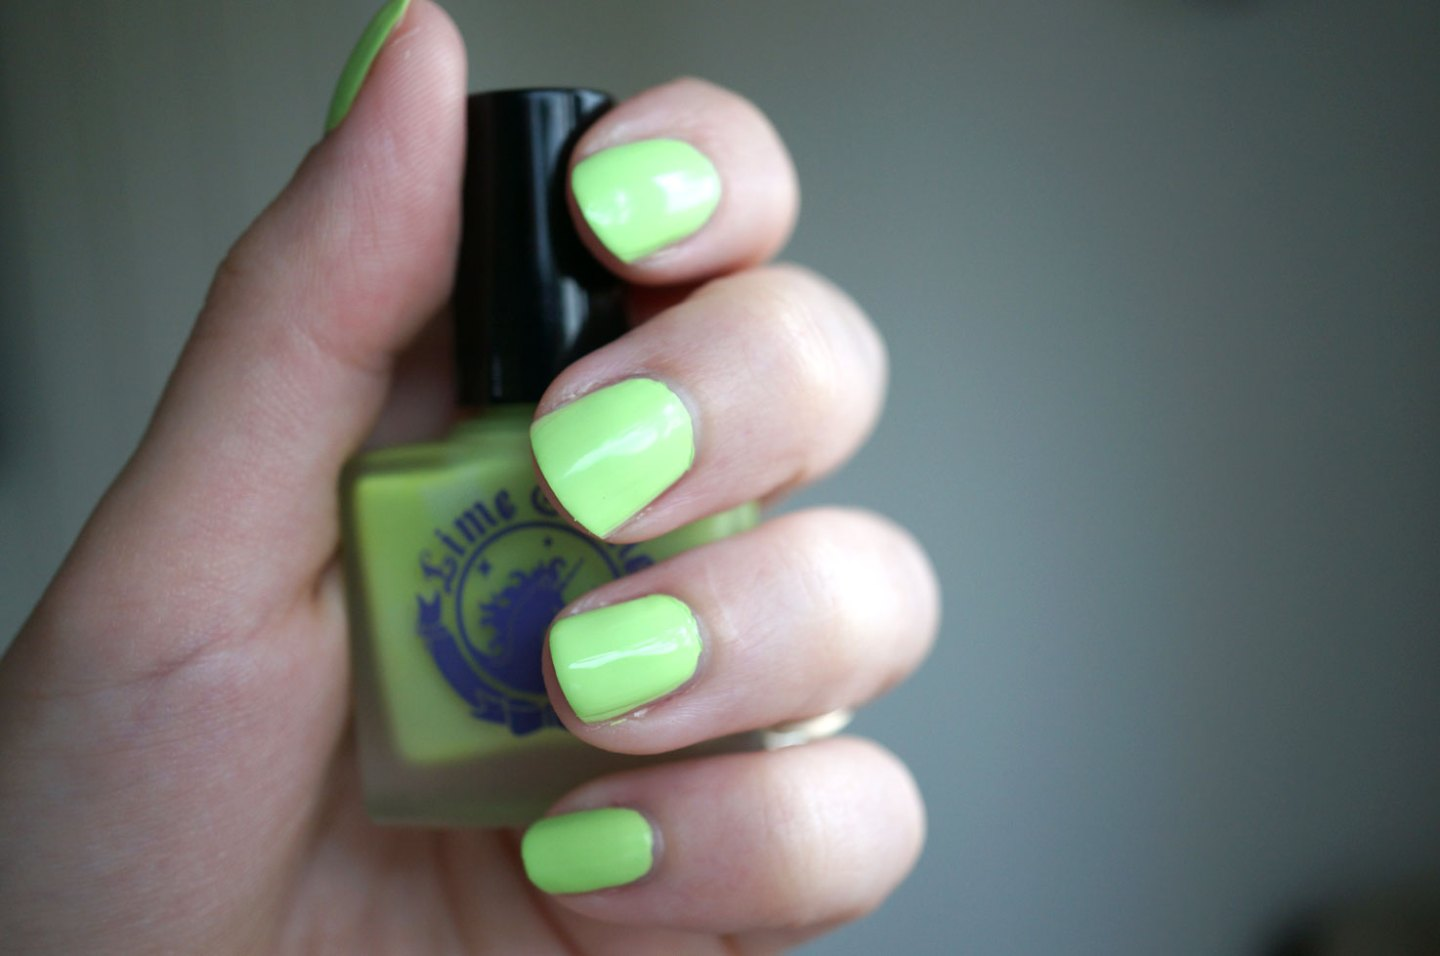 lime-crime-nail-polish-review